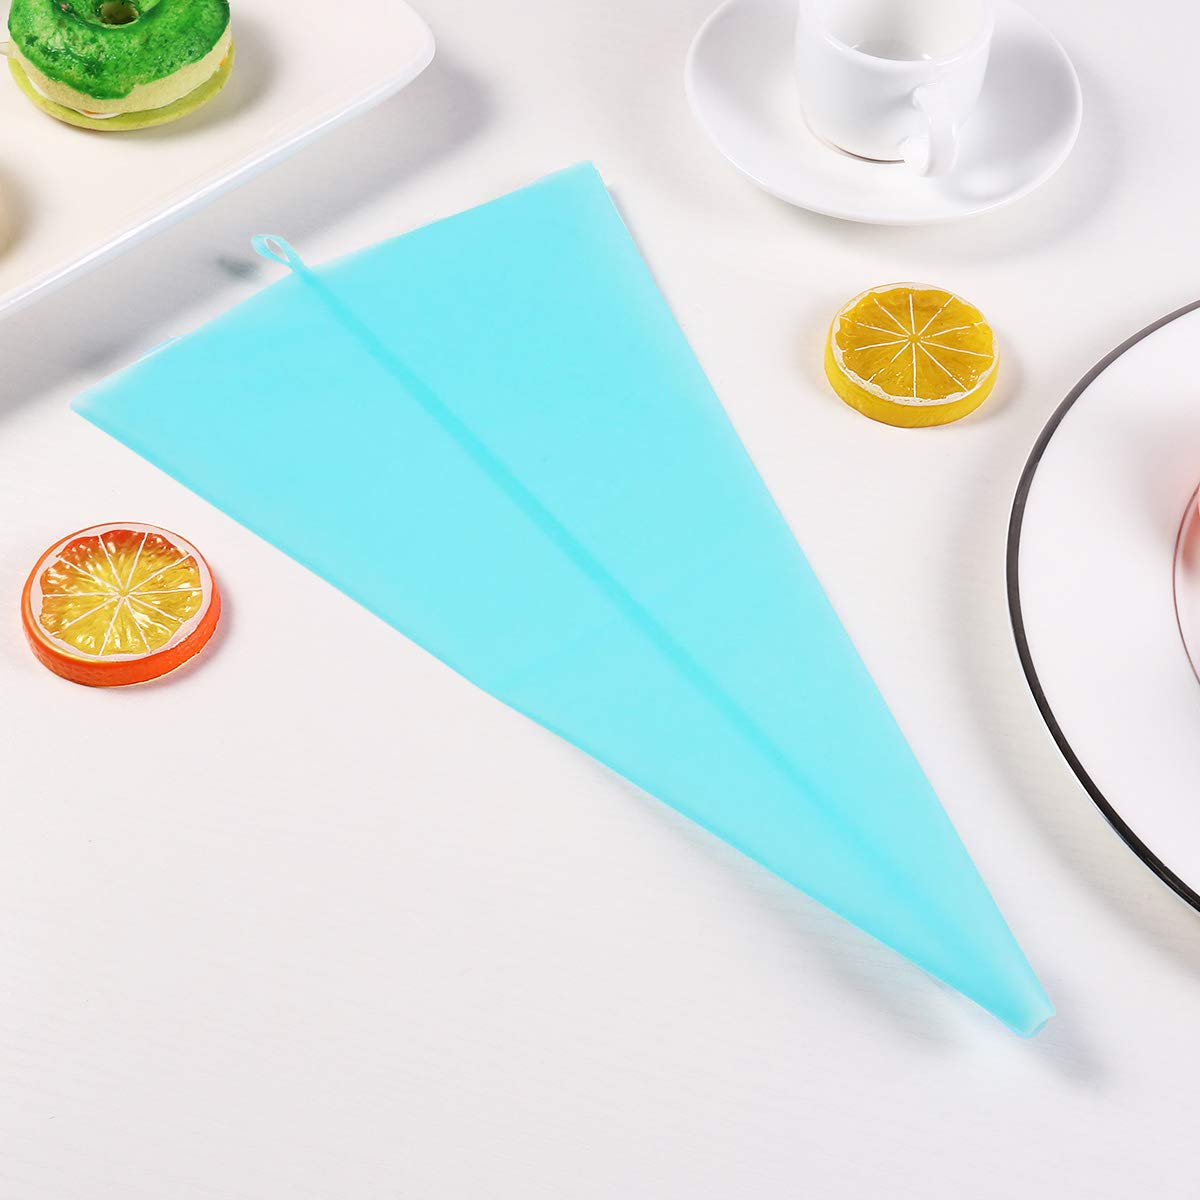 Silicone Pastry Bags, Weetiee 3 Sizes Reusable Icing Piping Bags Baking Cookie Cake Decorating Bags (12''+14''+16'')- 6 Pack - Bonus 6 Icing Couplers Fit Wilton Standard Size Tips Supplies by Weyey (Image #5)